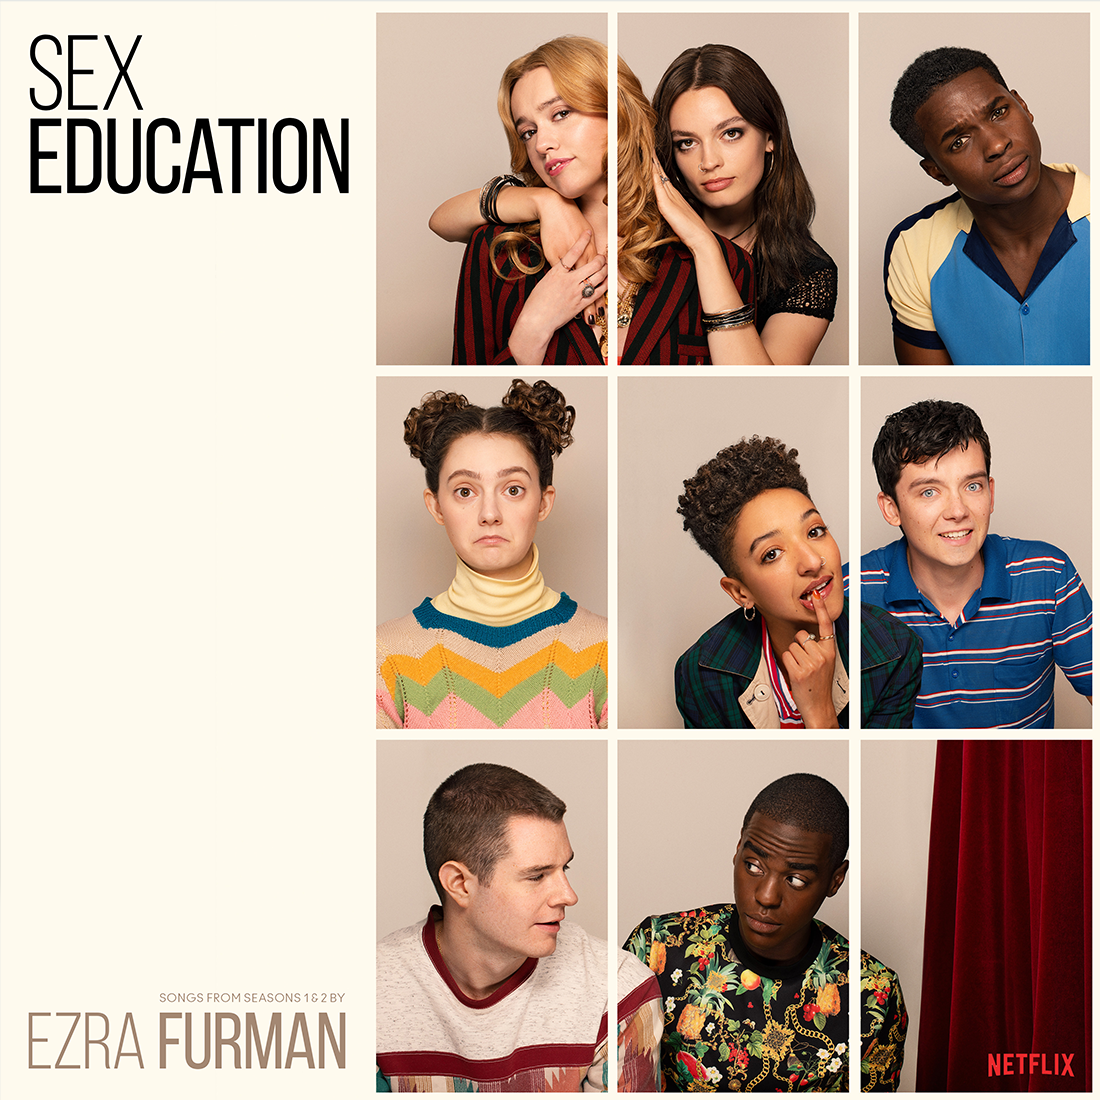 Sex Education Season 1 Episode 1 Subtitle (English Srt) Download